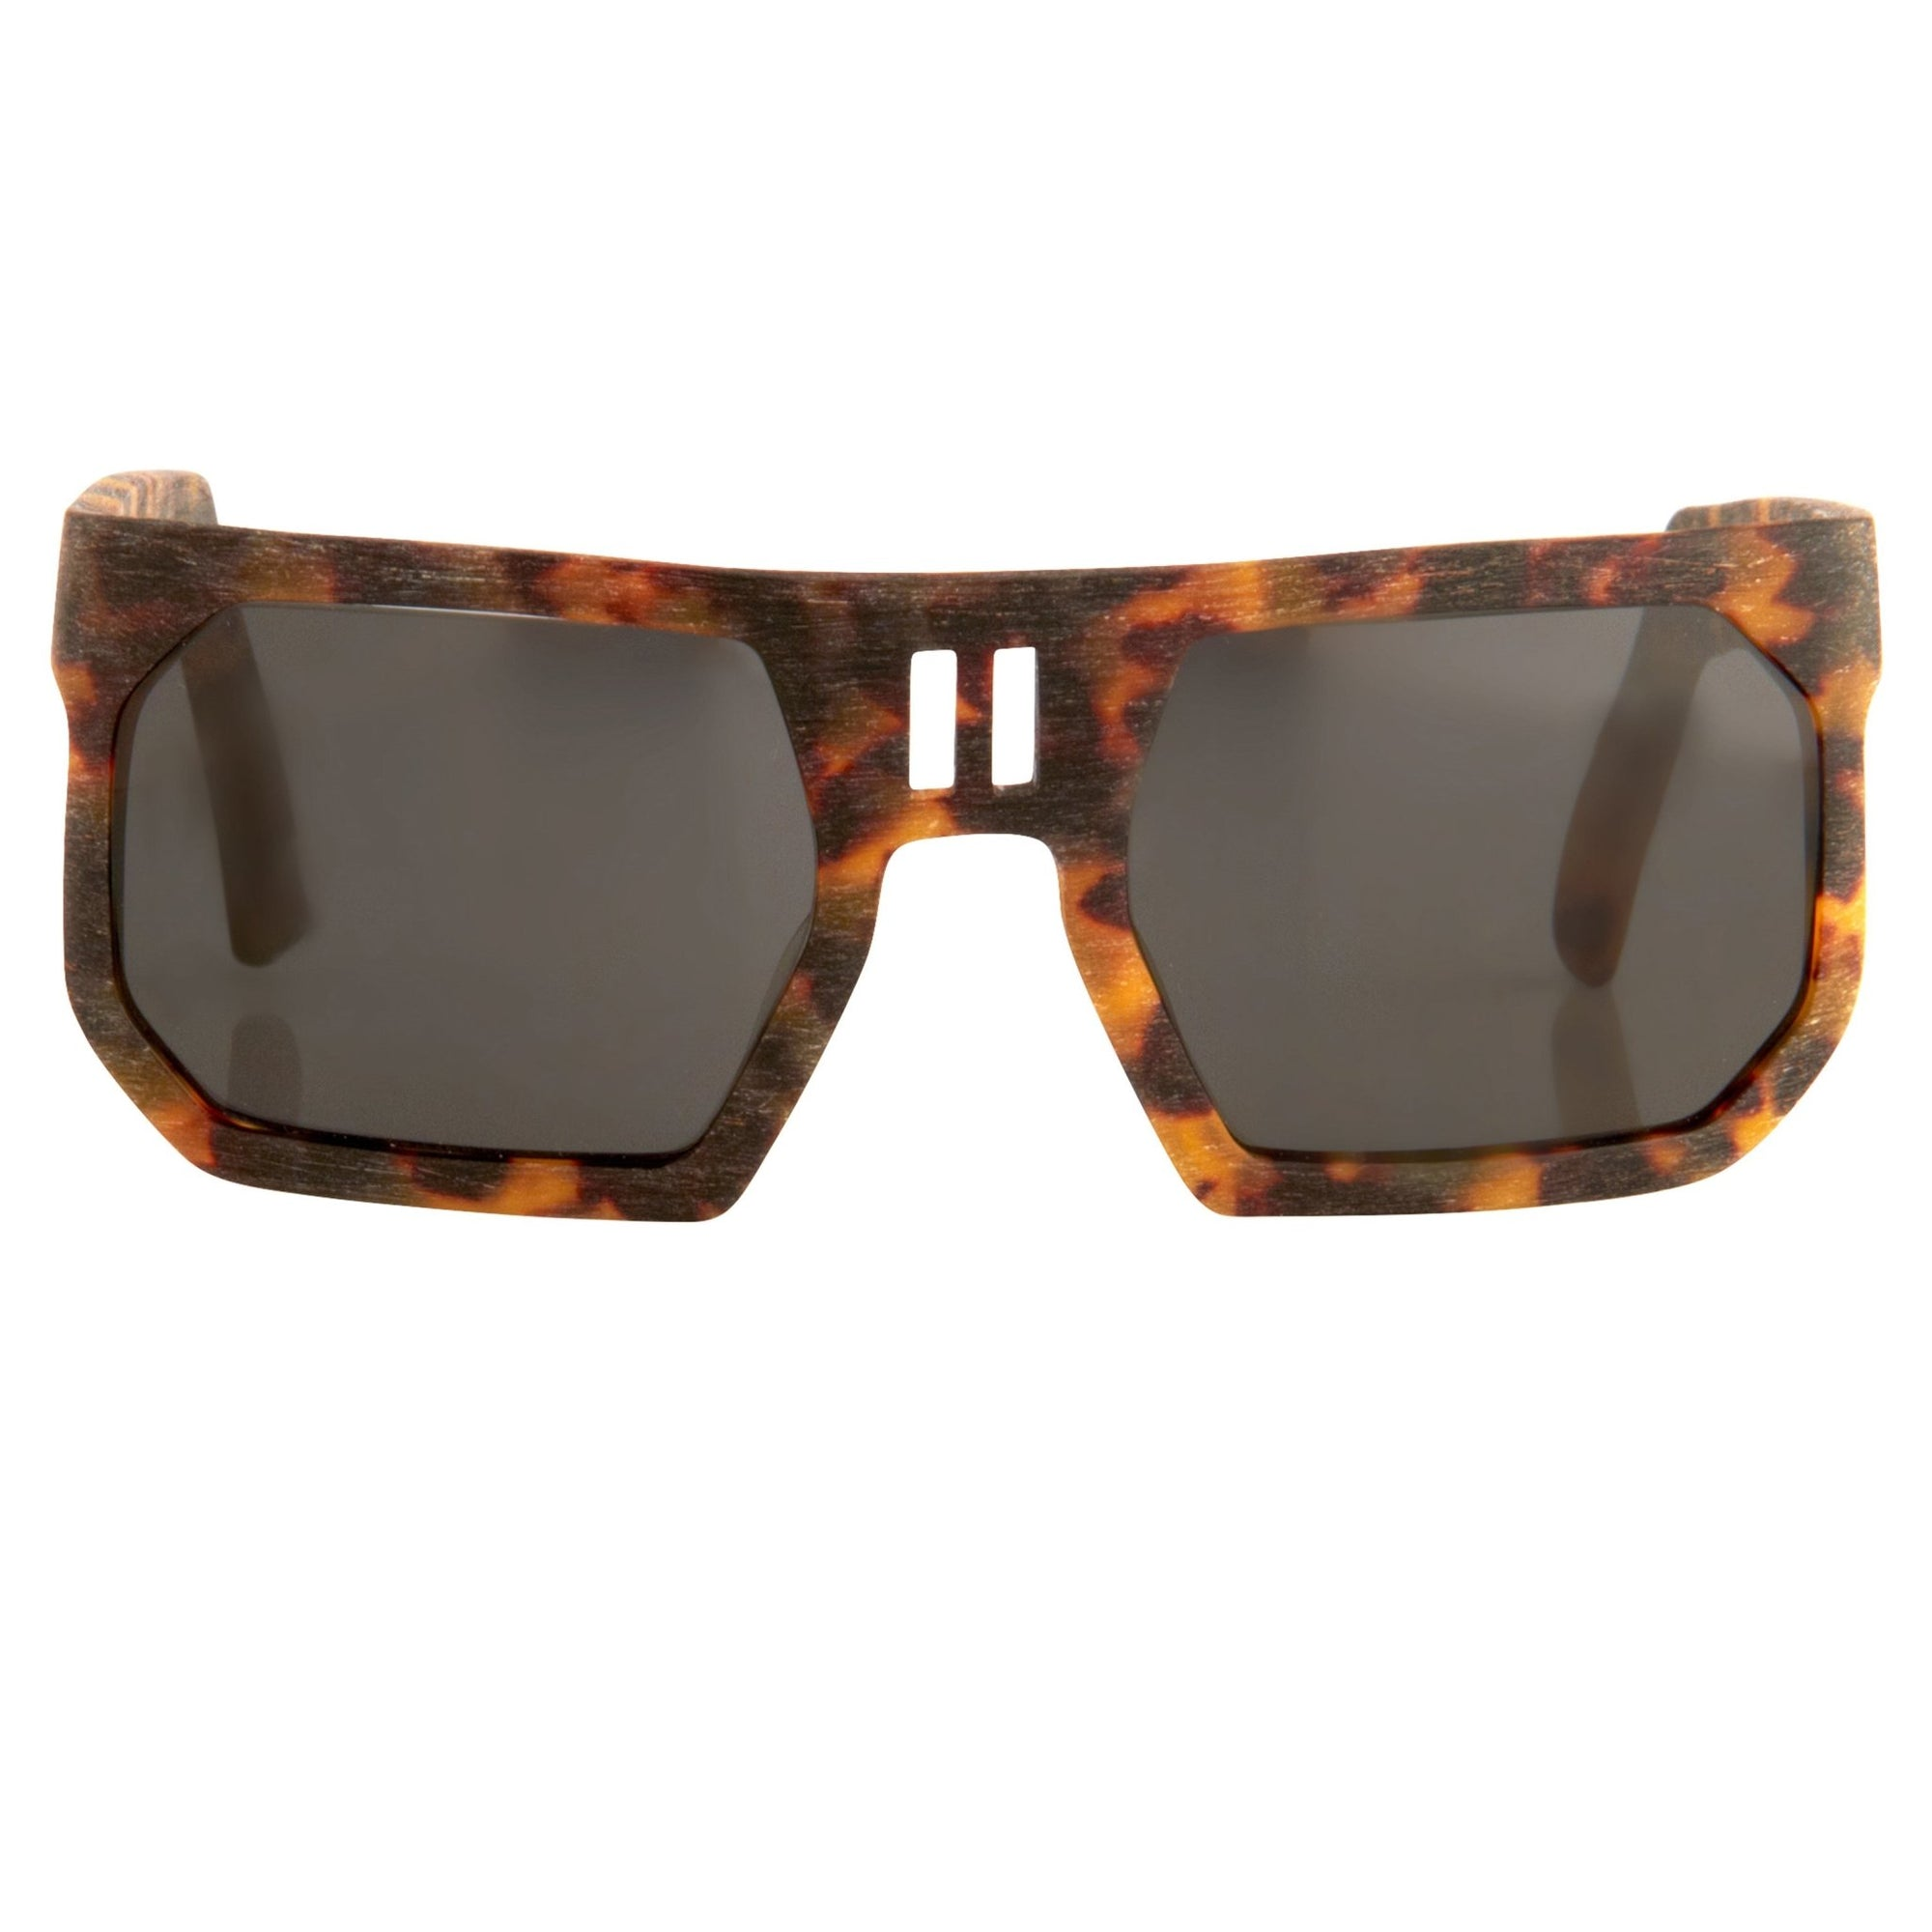 Boris Bidjan Saberi Sunglasses Rectangular Woody Tortoise Shell With Grey Category 3 Lenses BBS1C4SUN - Watches & Crystals